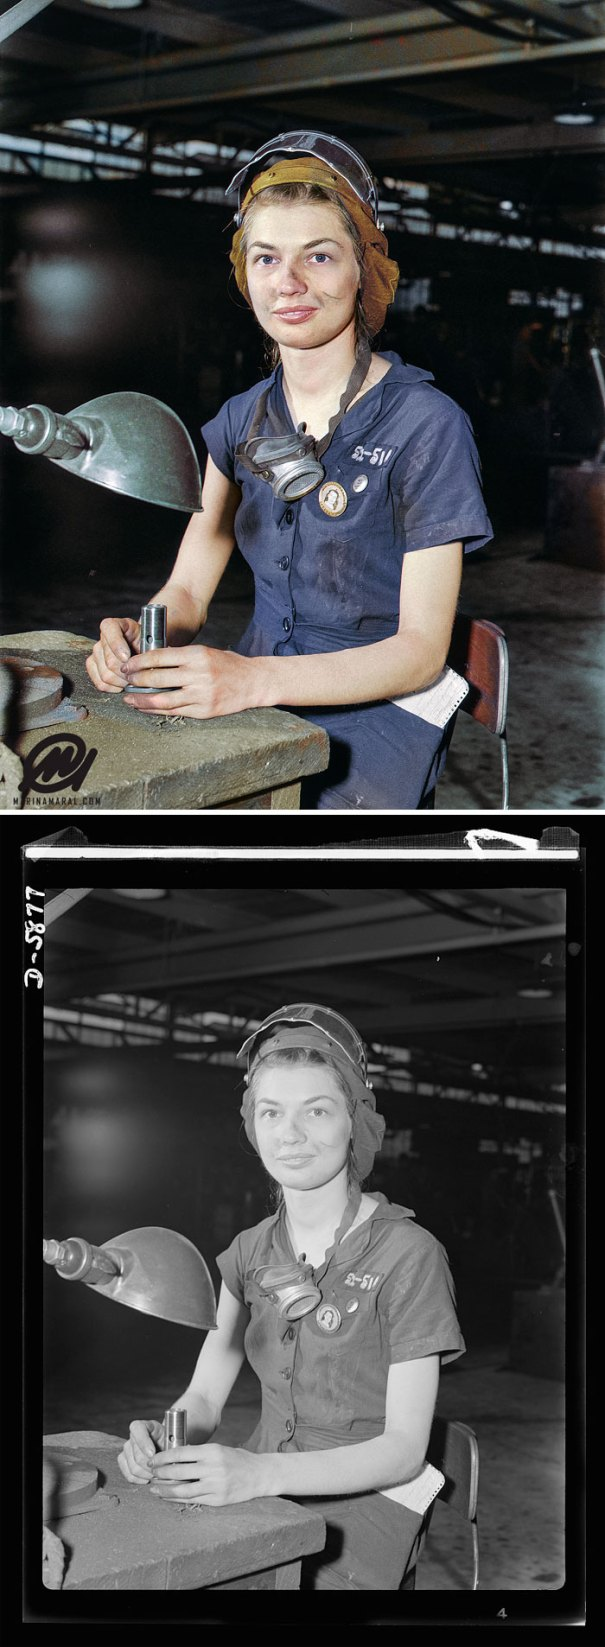 5b6d3b68d6a40-colorized-historic-photos-marina-amaral-26-5b6acea6ba5de__700 This Artist Colorizes Old Black & White Photos, And They Will Change The Way People Imagine History Photography Random